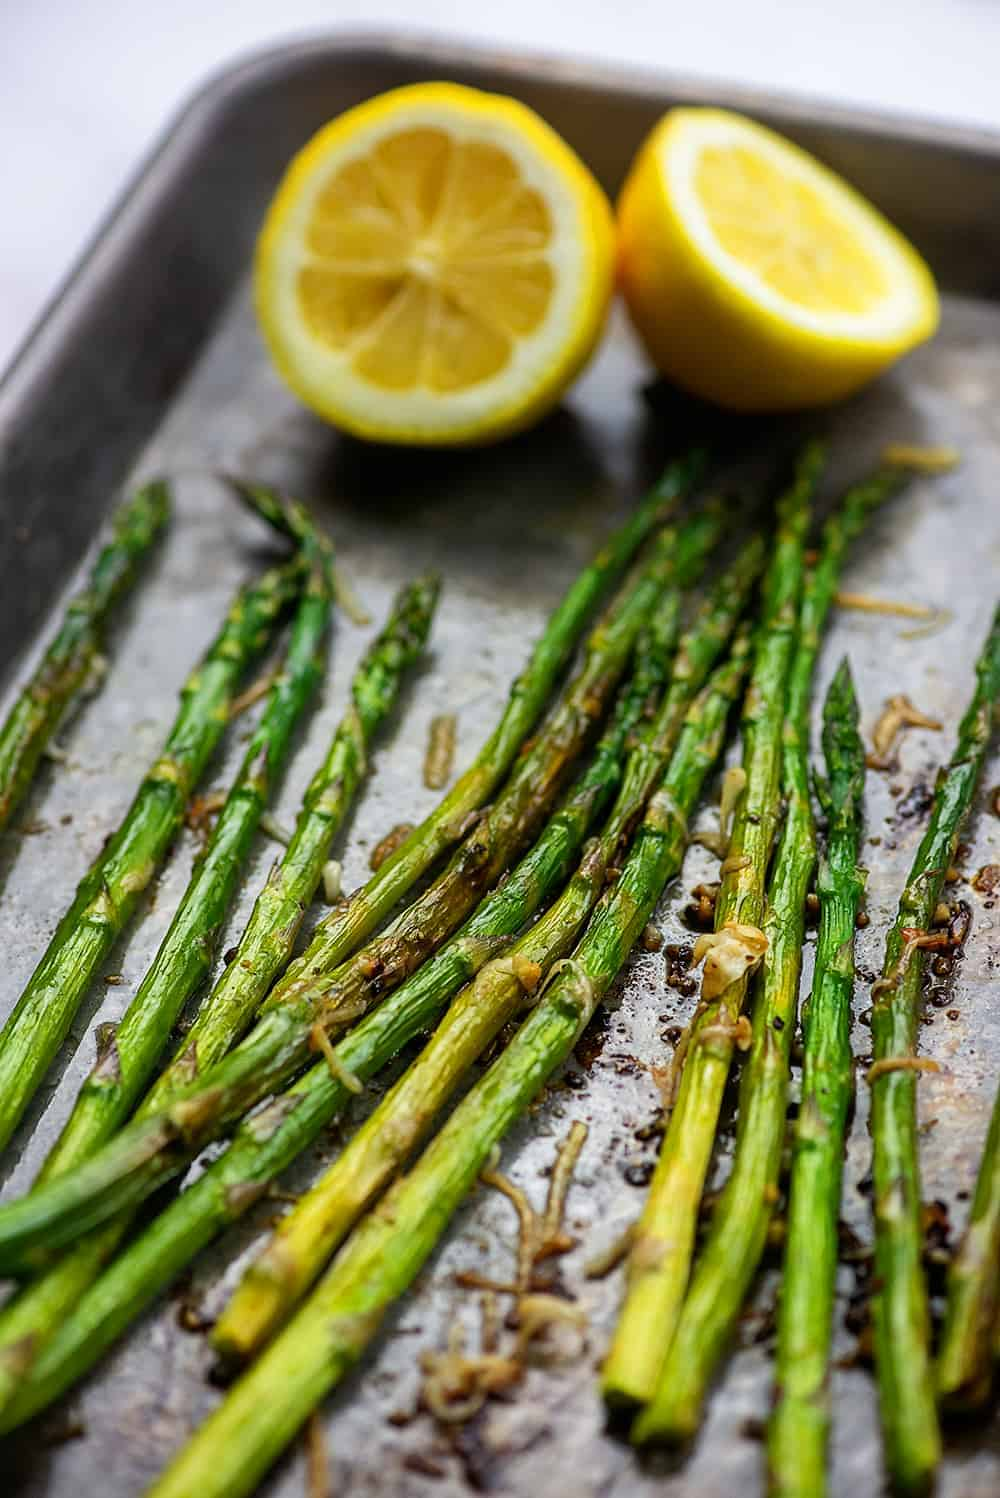 oven roasted asparagus with lemons on baking sheet